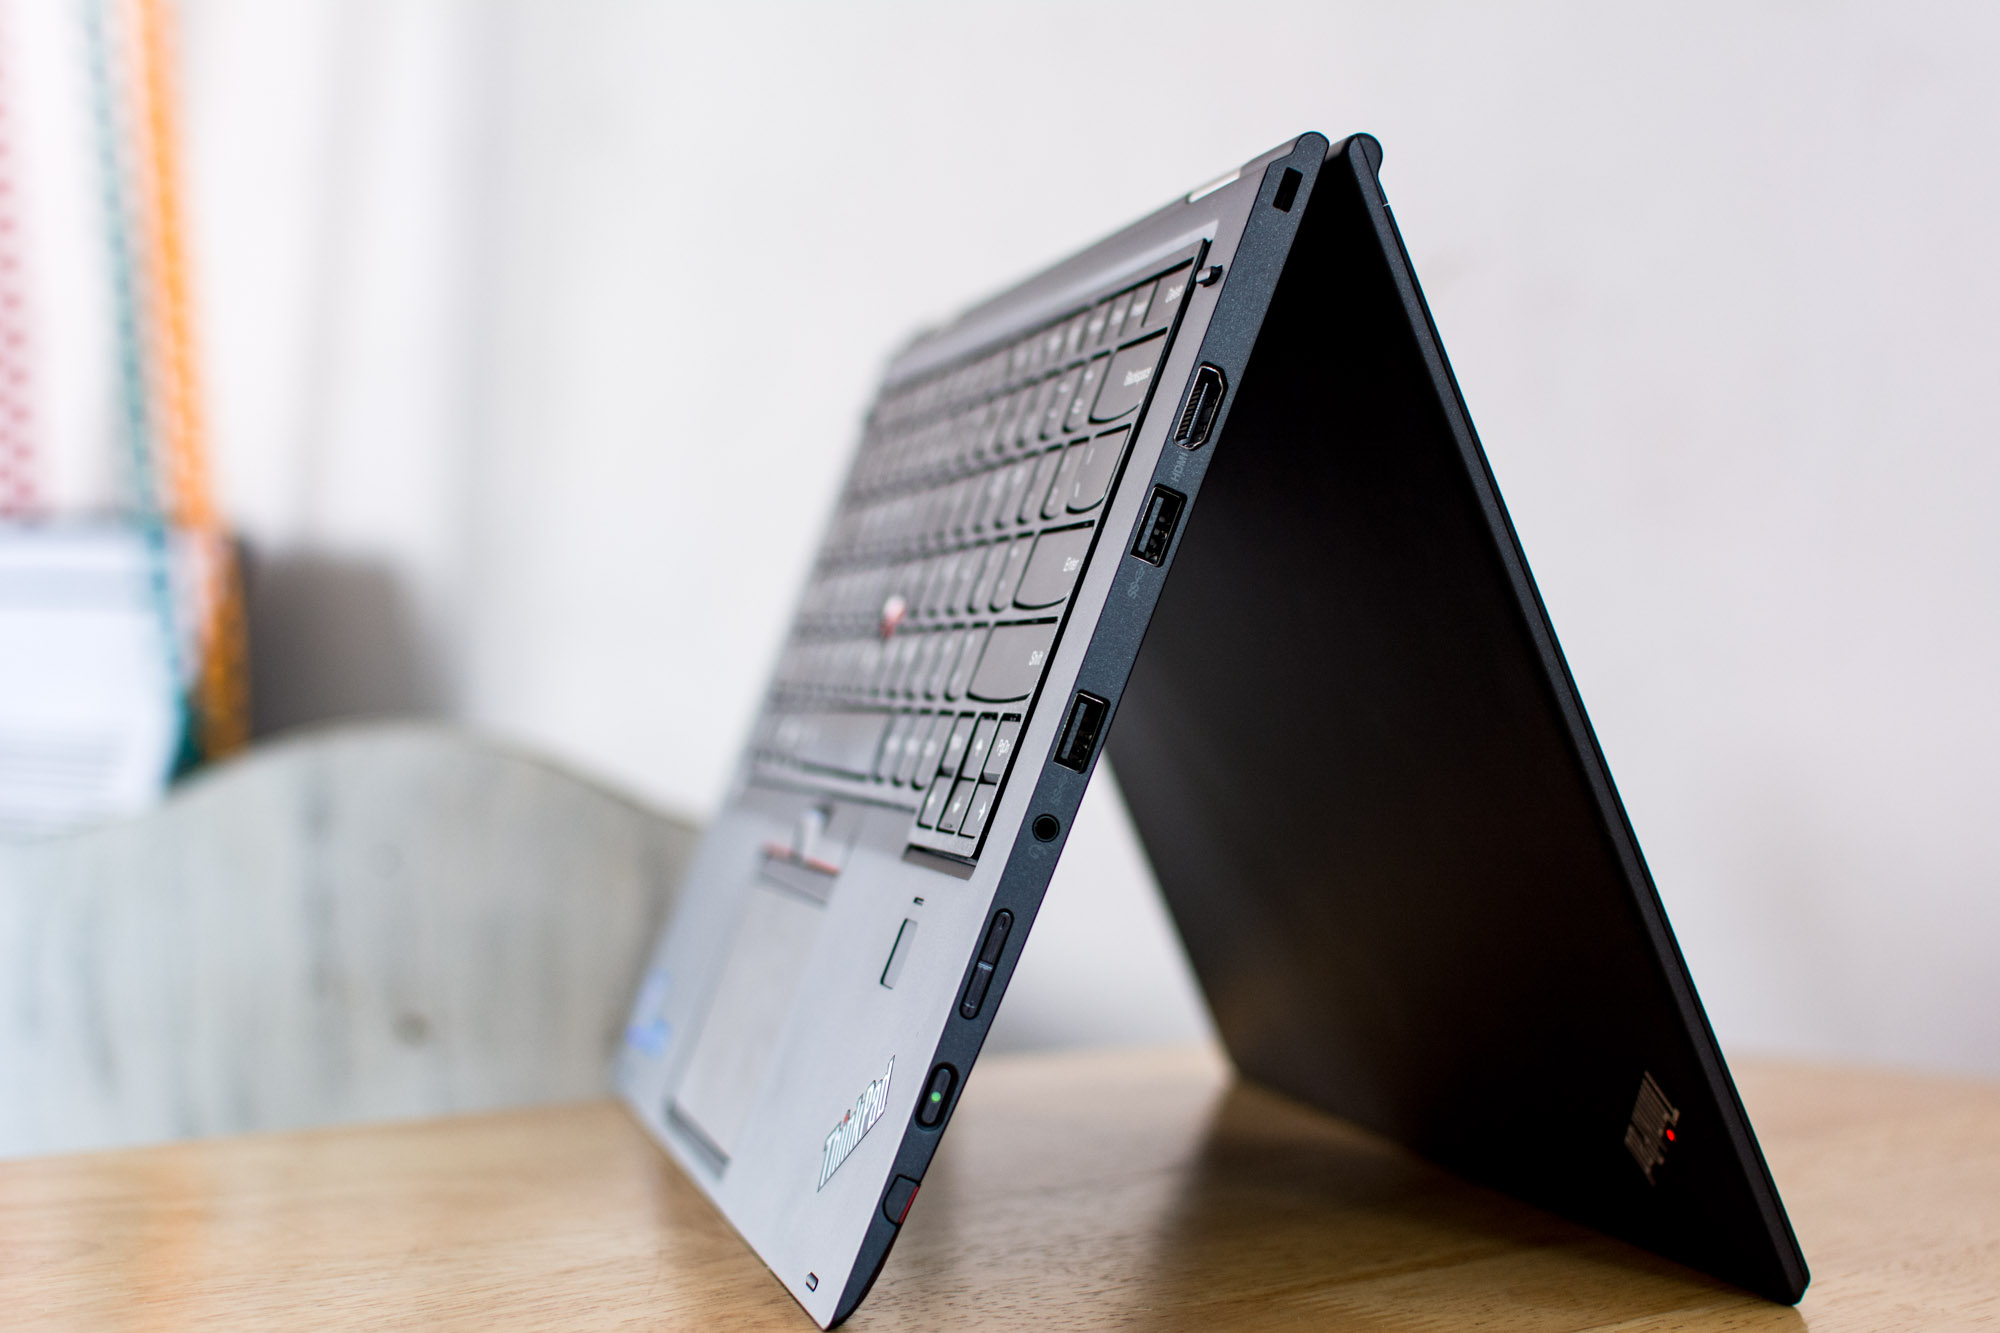 Lenovo-Thinkpad-X1-Yoga-8